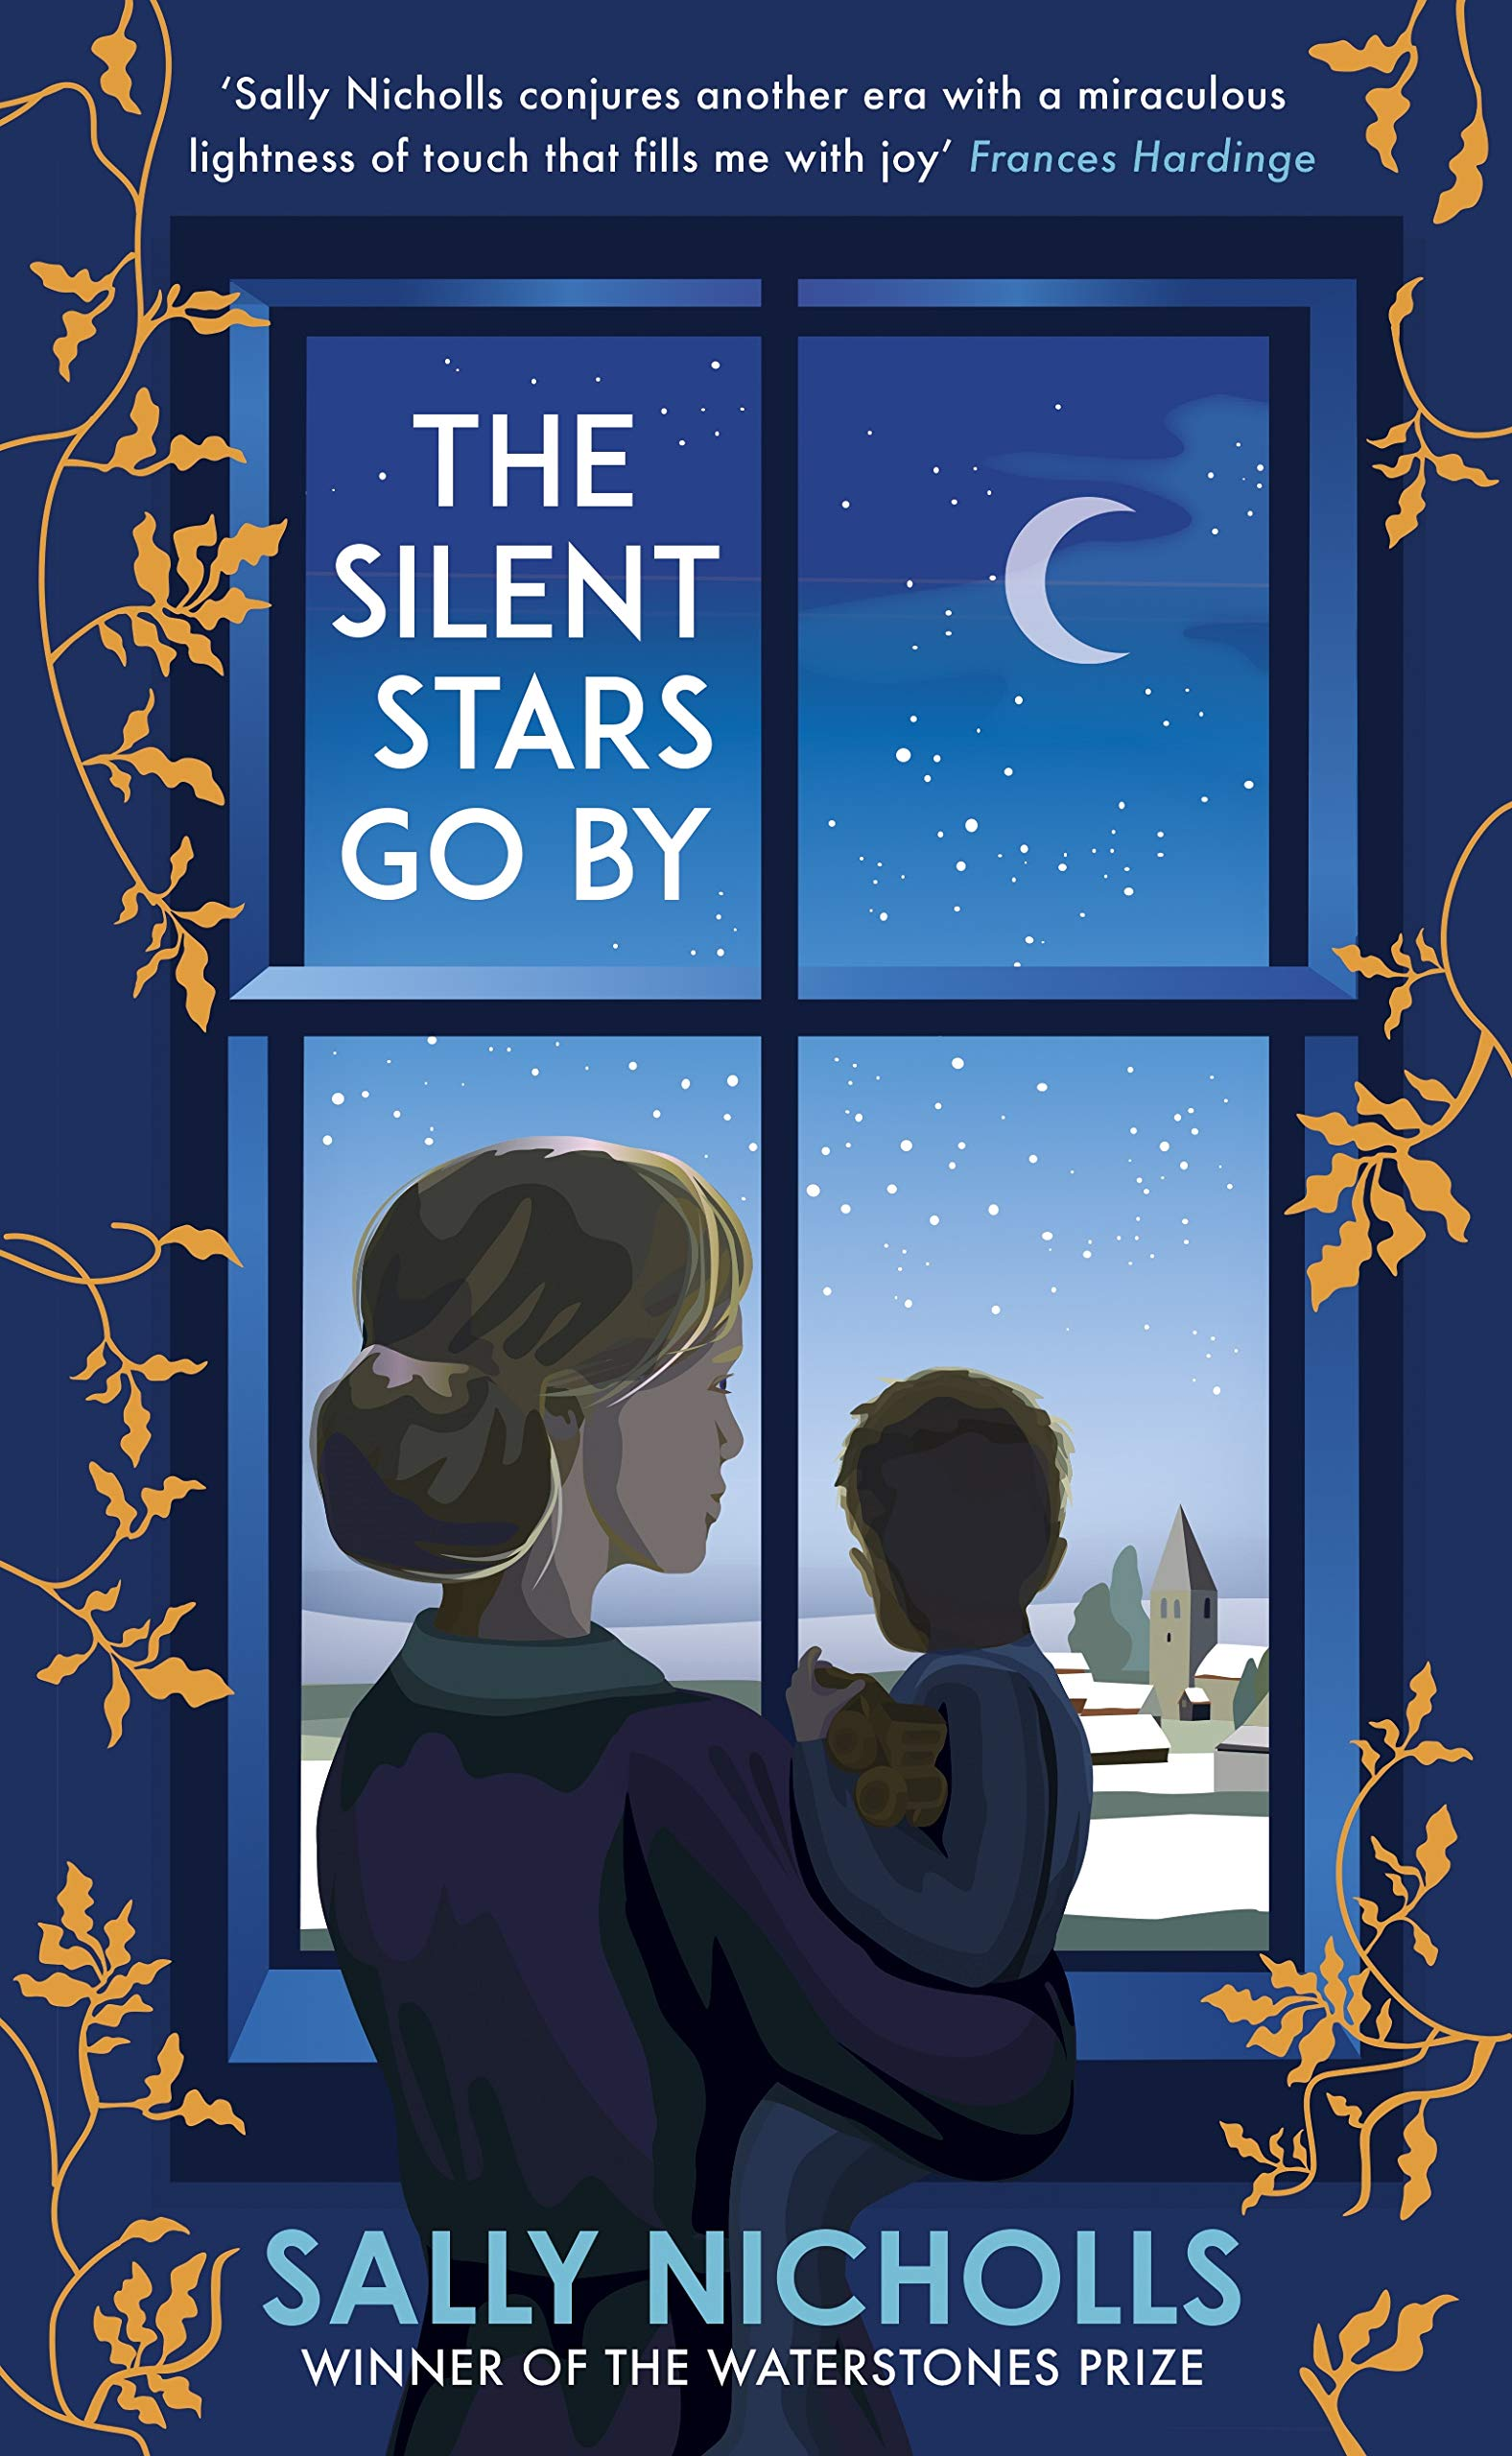 The Silent Stars Go By: Amazon.co.uk: Nicholls, Sally: Books